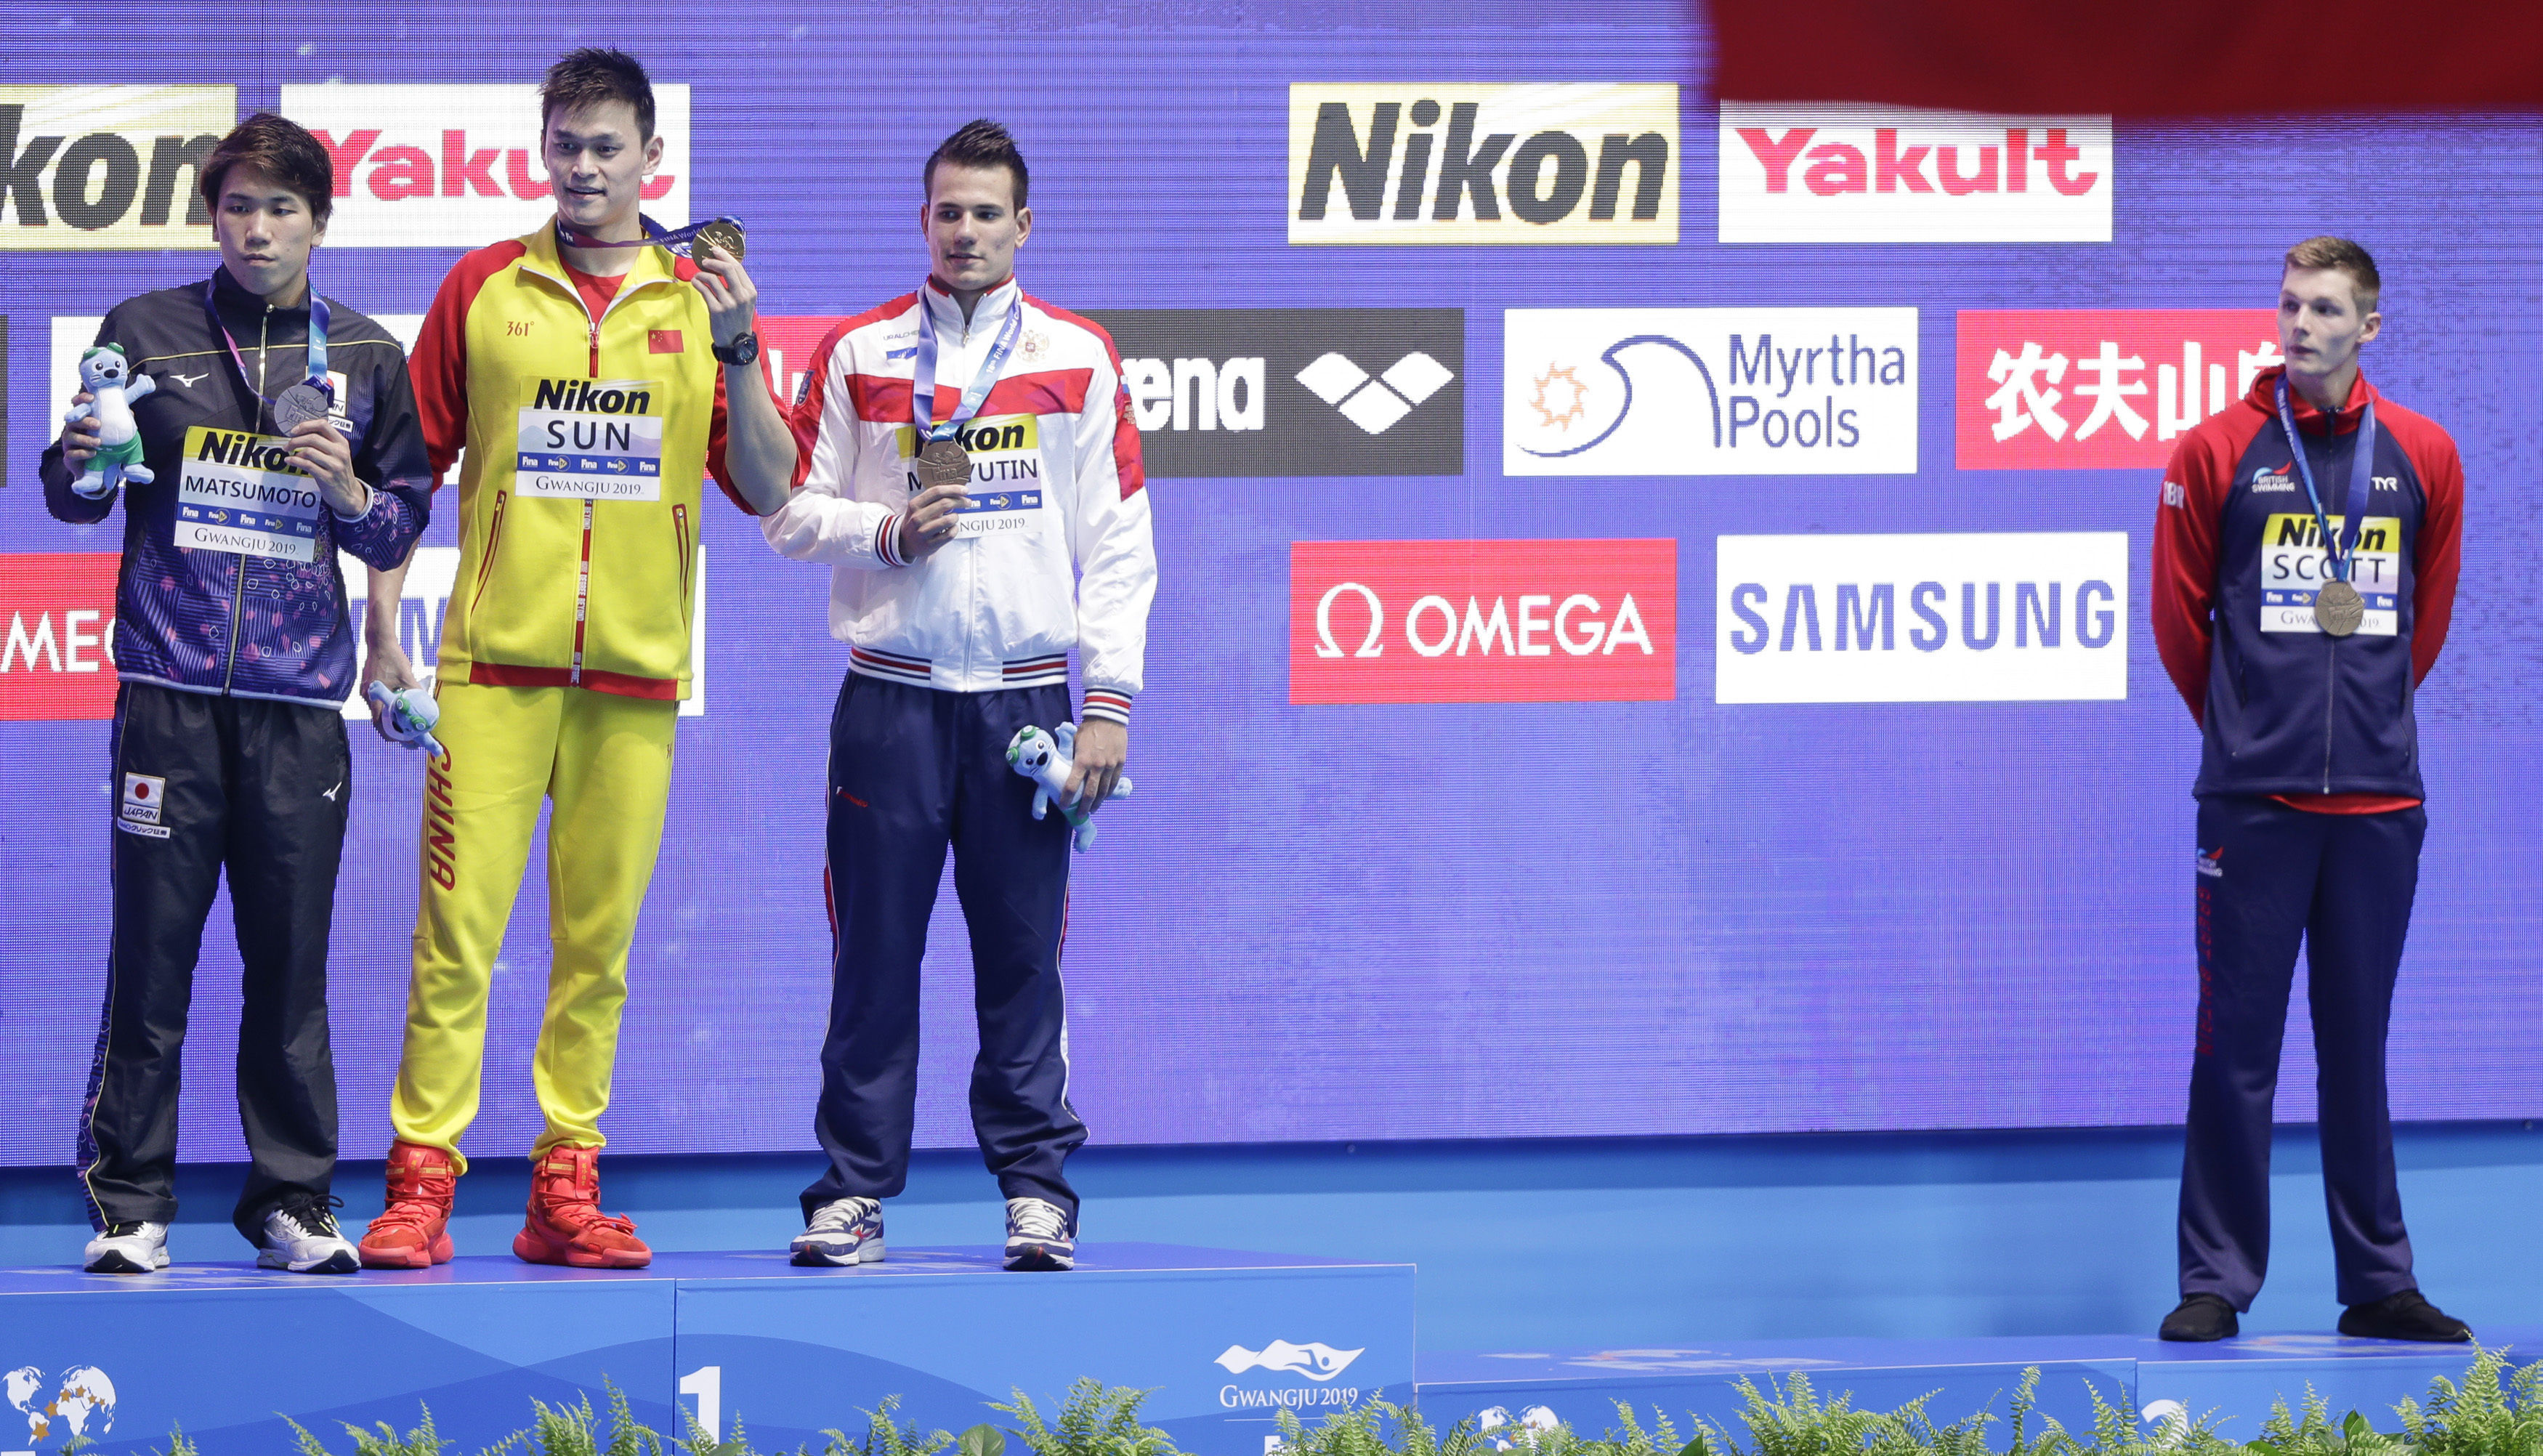 Duncan Scott, right stood away from the podium after the 200m freestyle